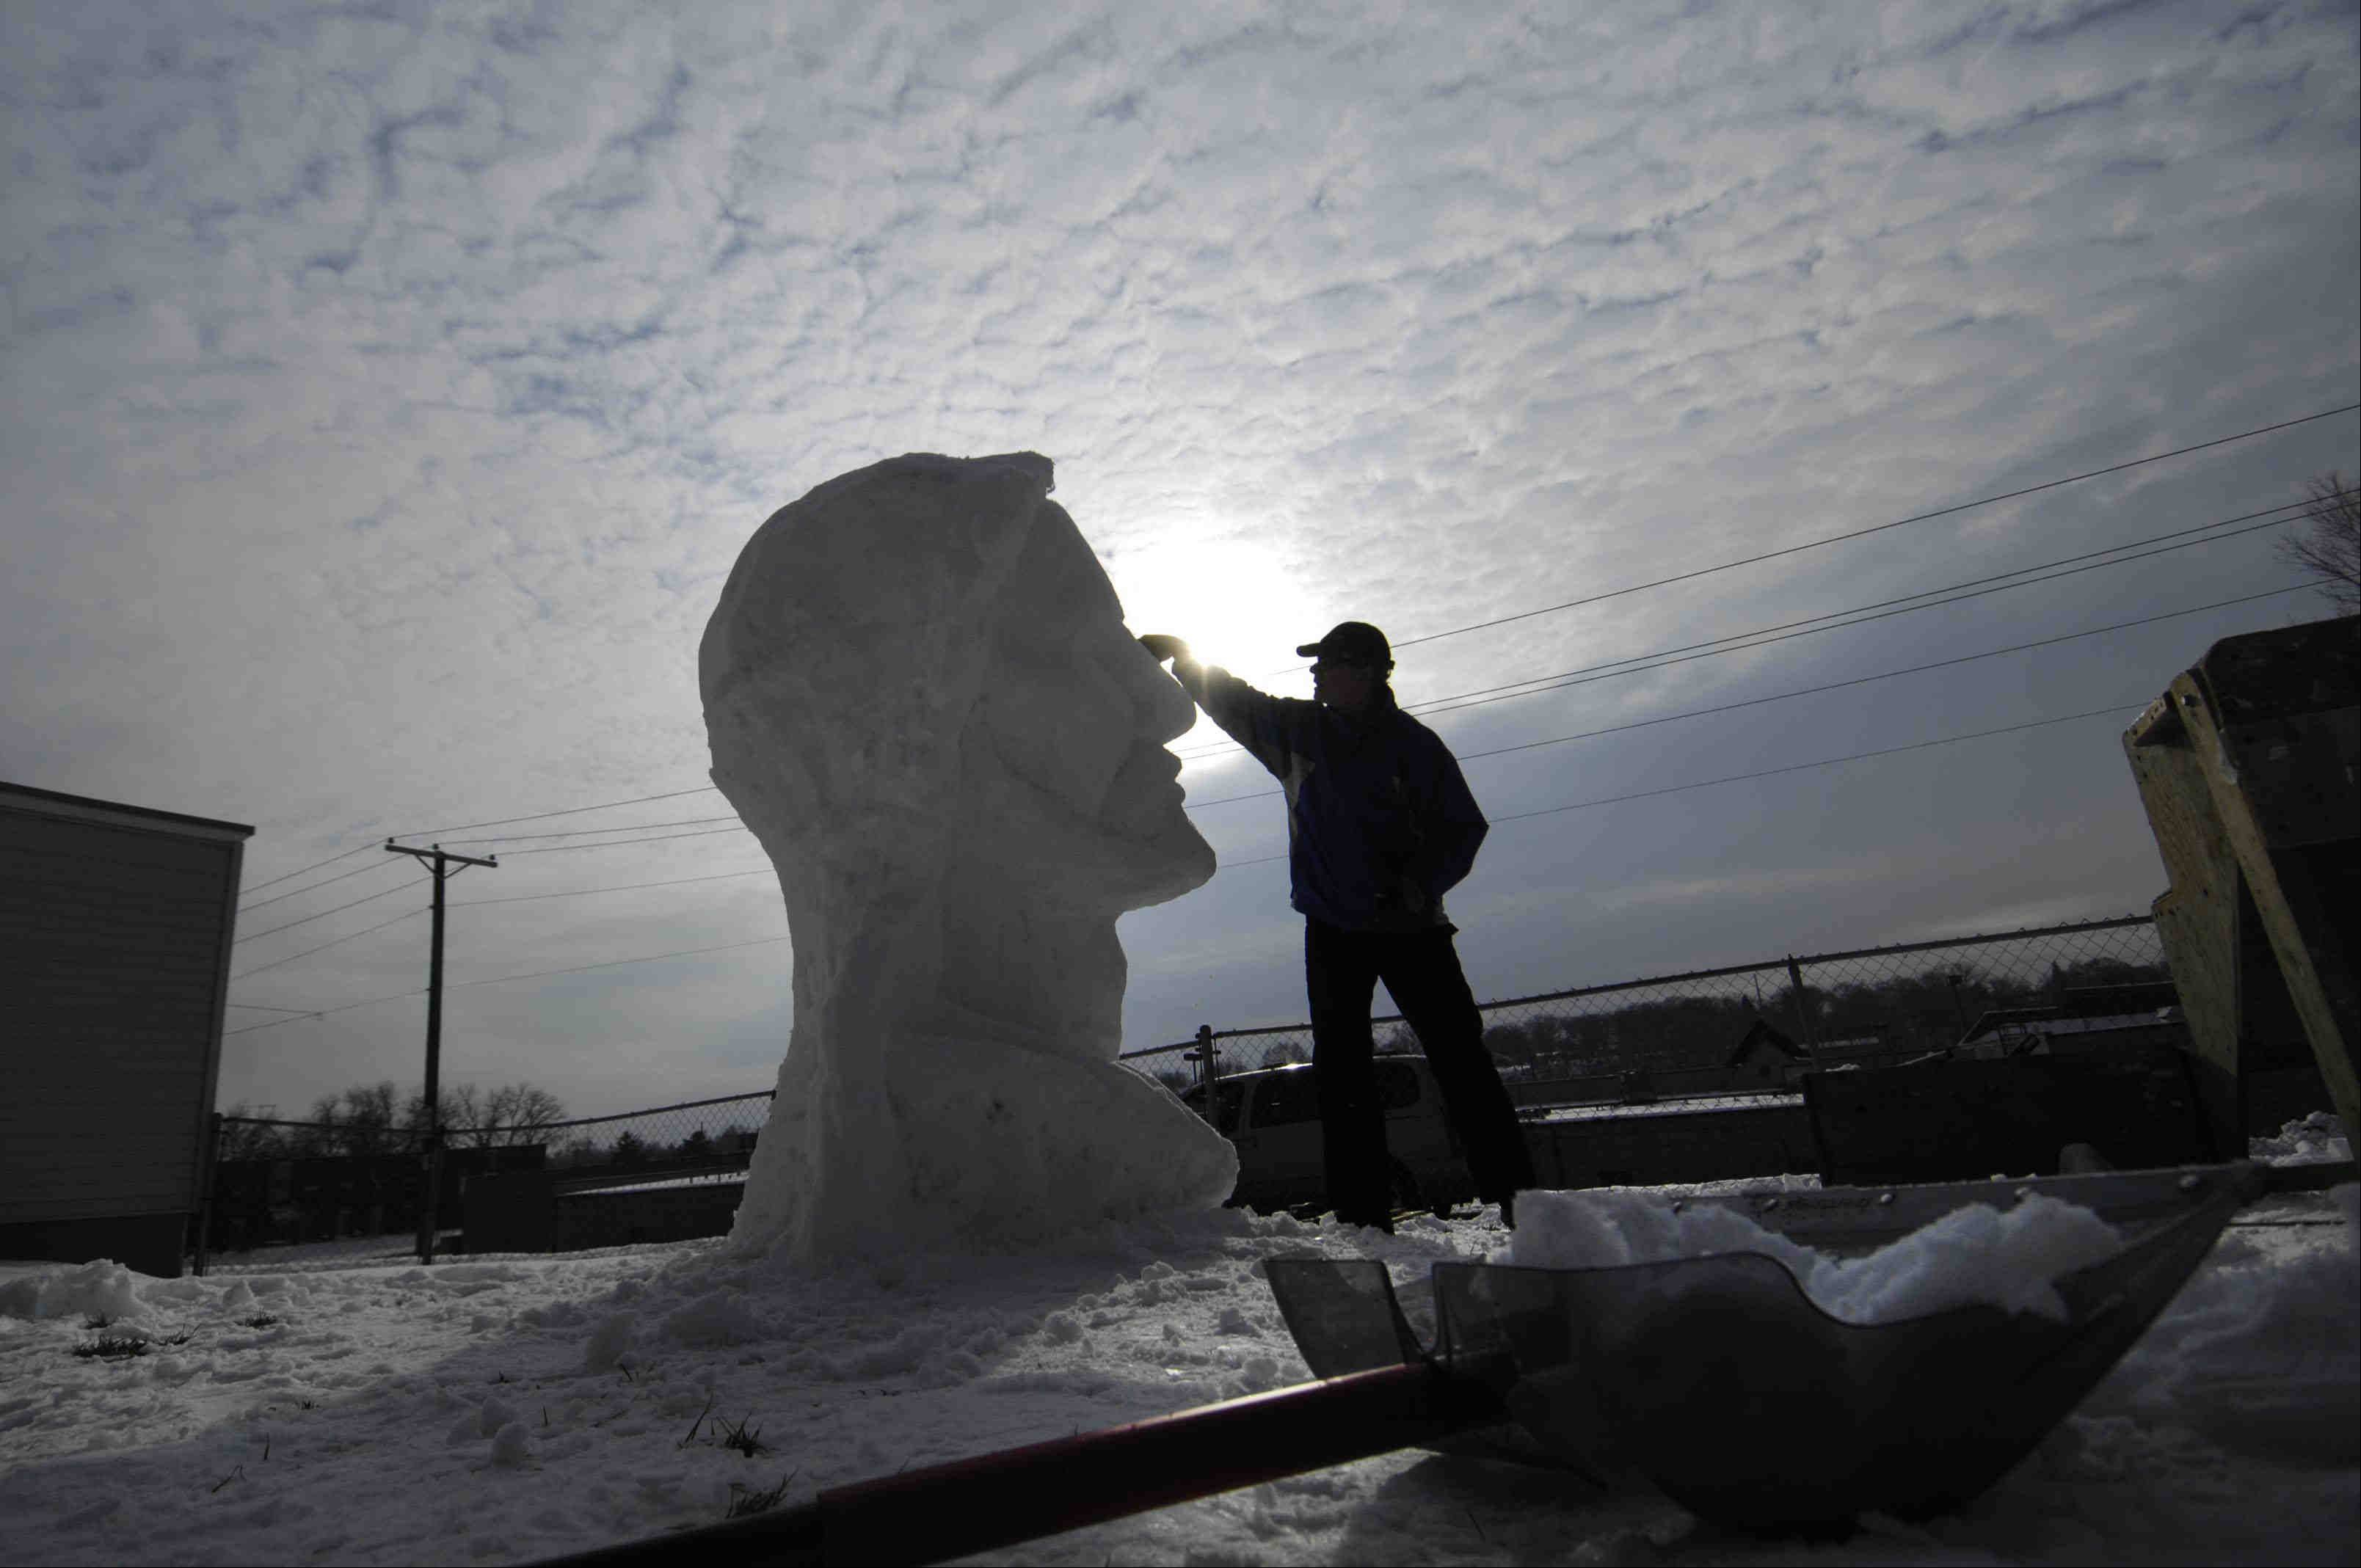 Fran Volz has been creating snow sculptures in his yard for 25 years. This year, he moved from Arlington Heights to Elgin and created a neighborhood buzz with his first sculpture, a 7�-foot-tall Jesus. He spent the first day making blocks of snow and stacking them. Then the next two days were spent using his homemade tools to carve and sculpt the figure.